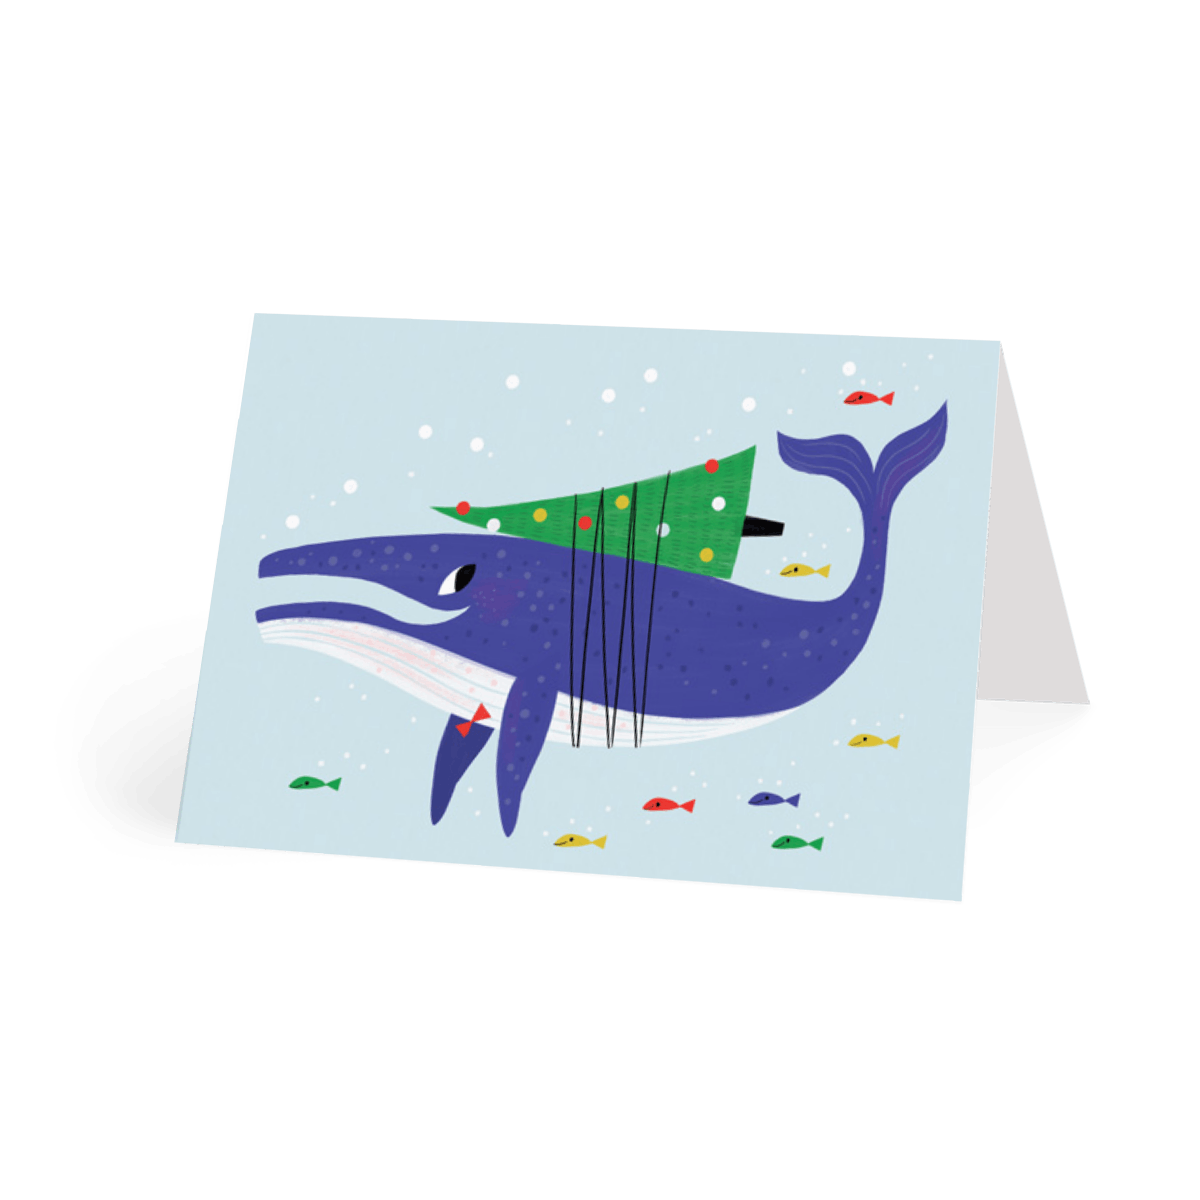 Https%3a%2f%2fwww.papier.com%2fproduct image%2f12552%2f14%2fchristmas whale 3162 avant 1477141641.png?ixlib=rb 1.1